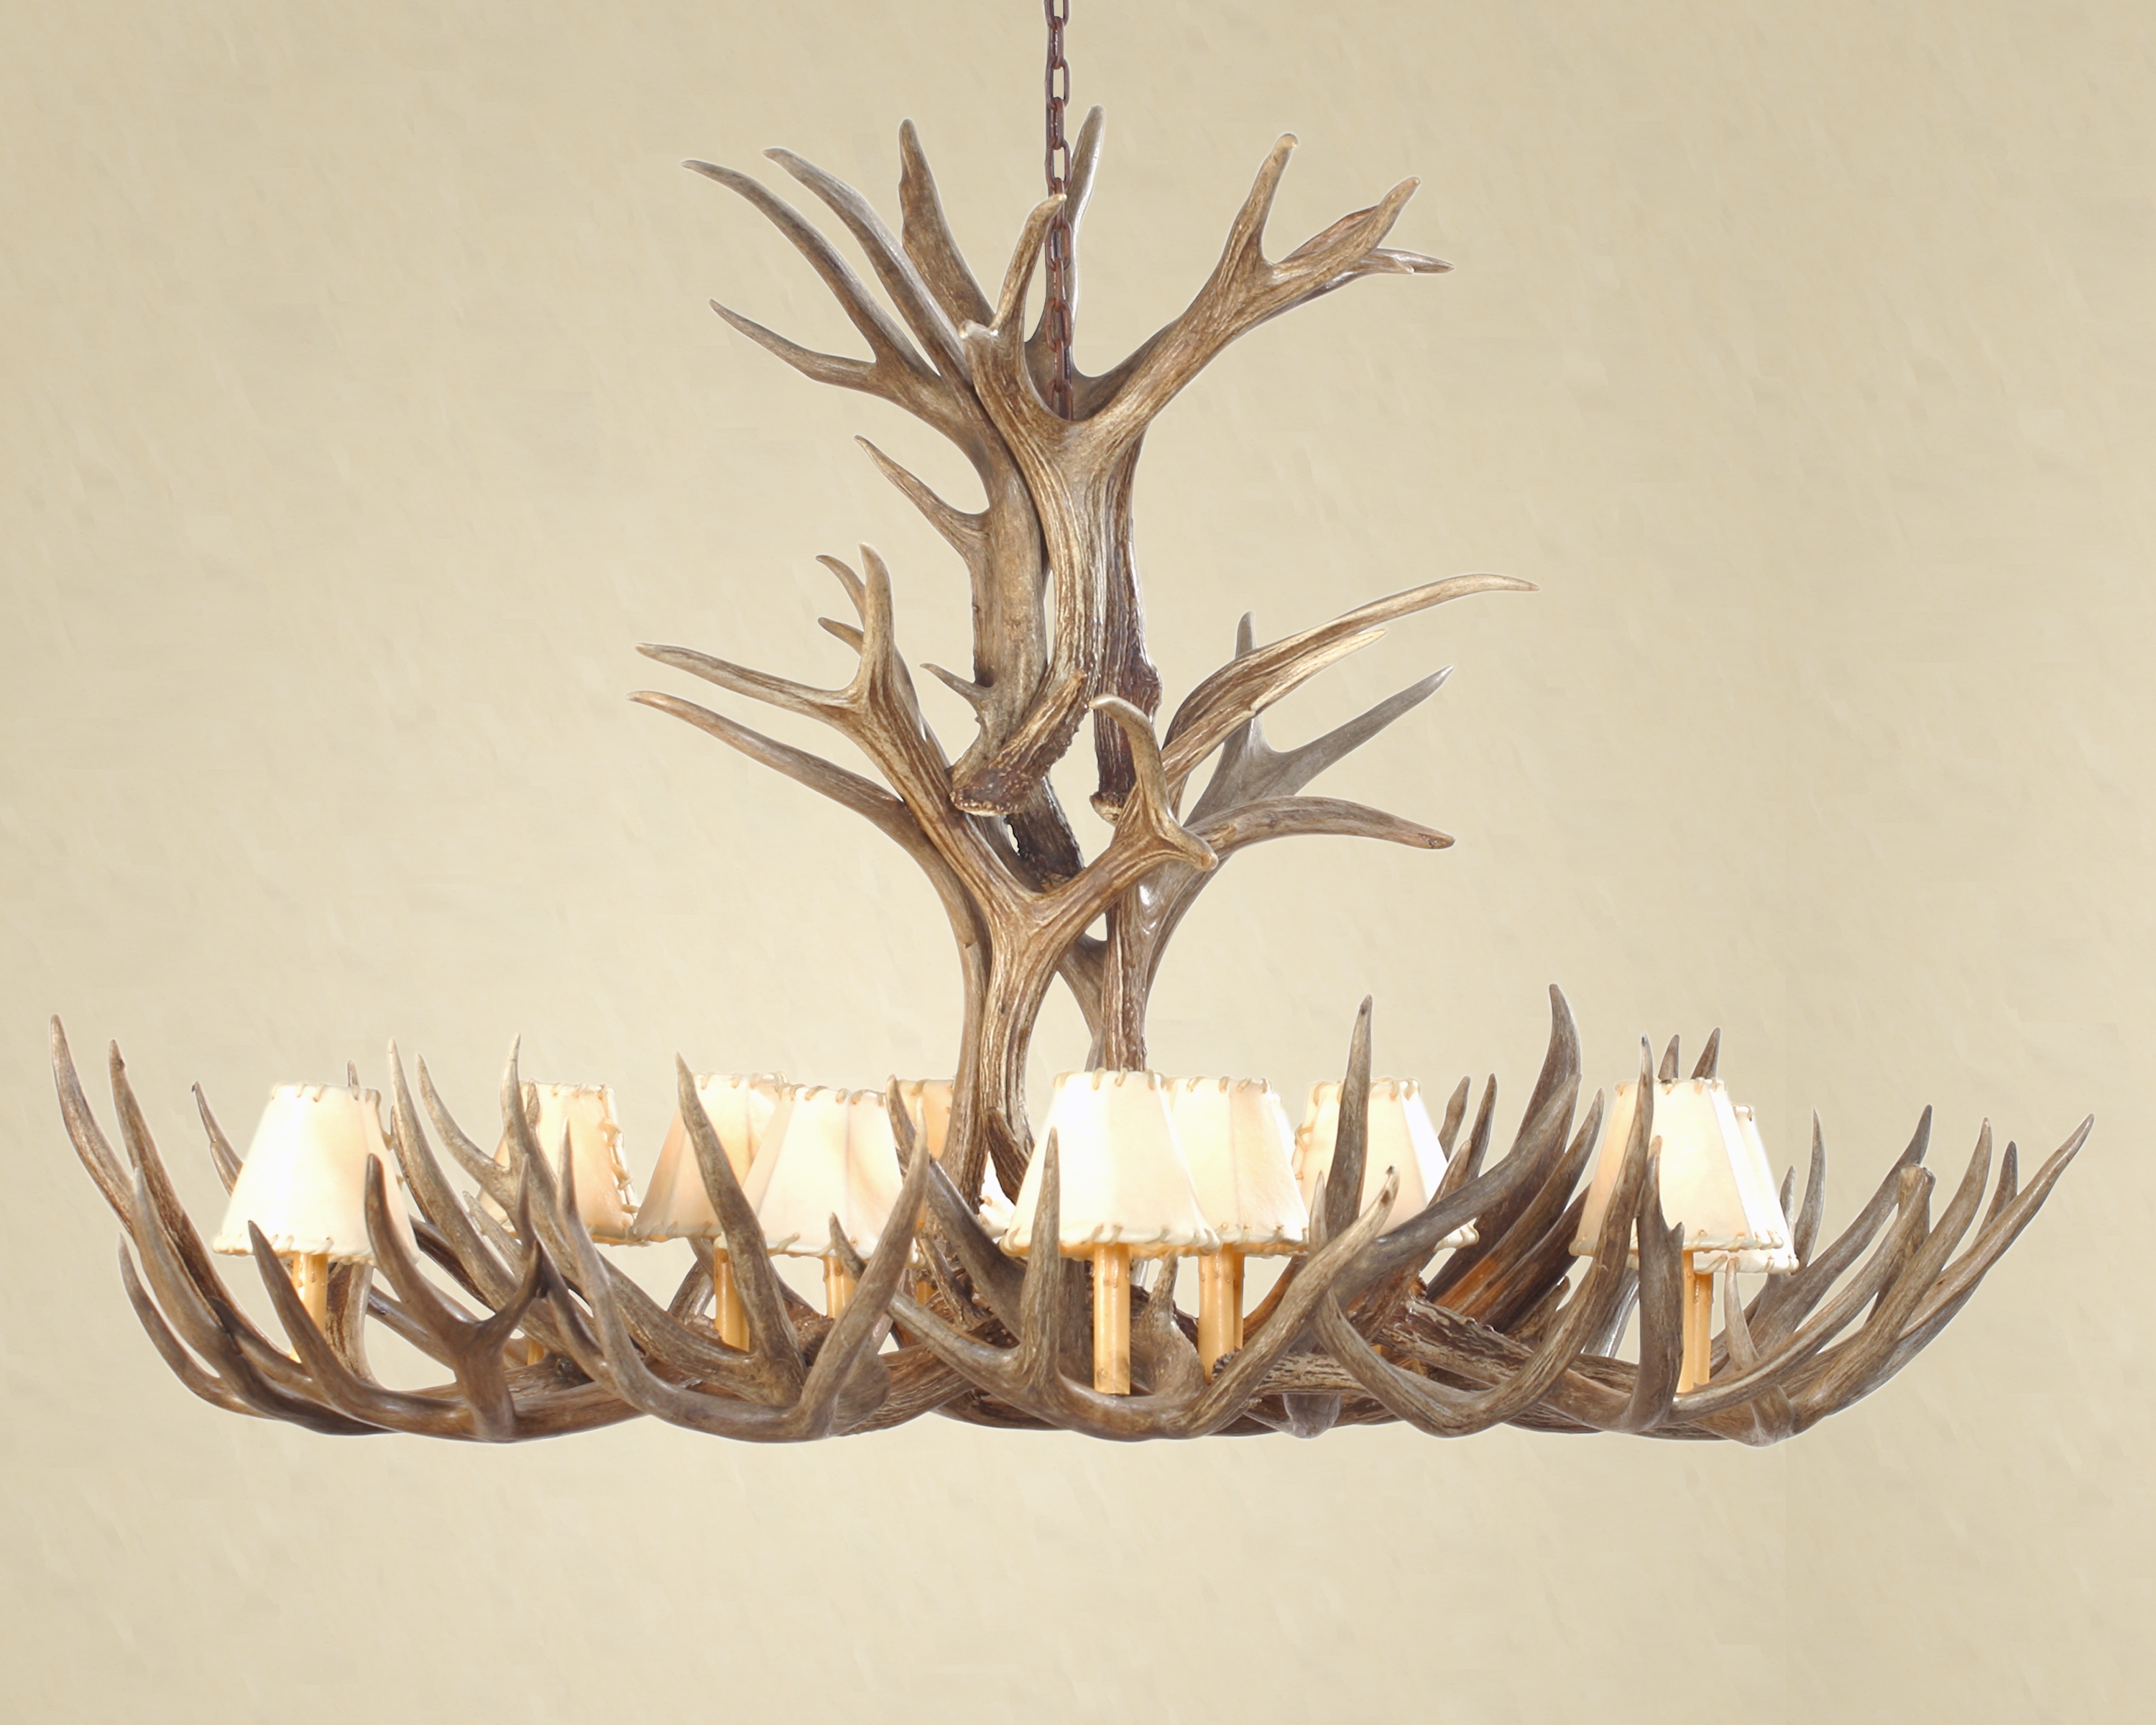 Essentials To Know Before You Buy An Antler Chandelier Inside Large Antler Chandelier (View 6 of 15)